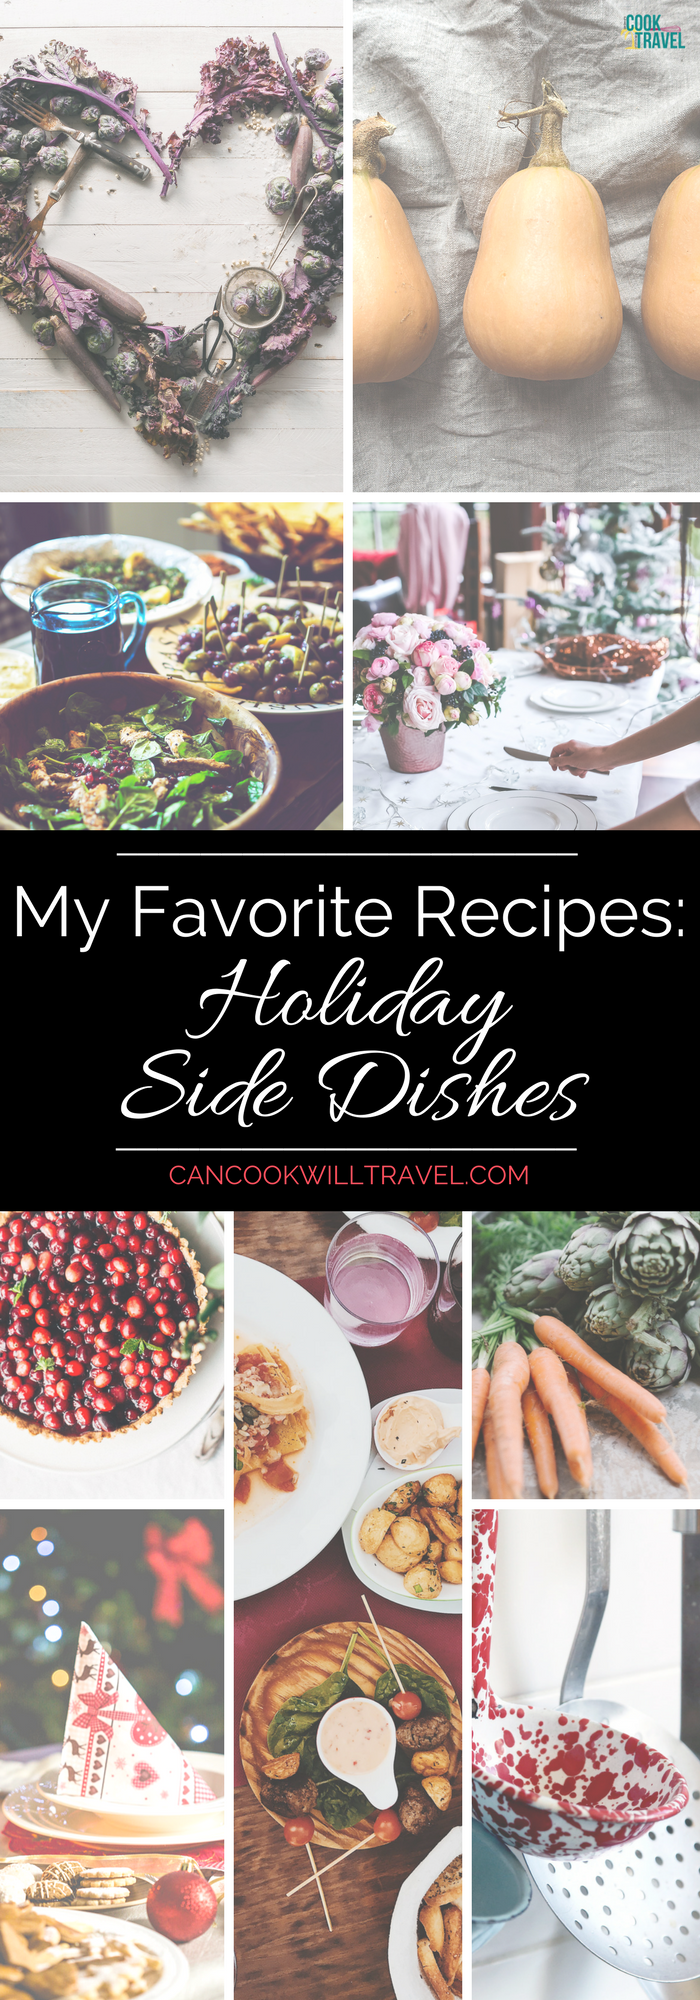 Favorite Holiday Side Dishes_Tall